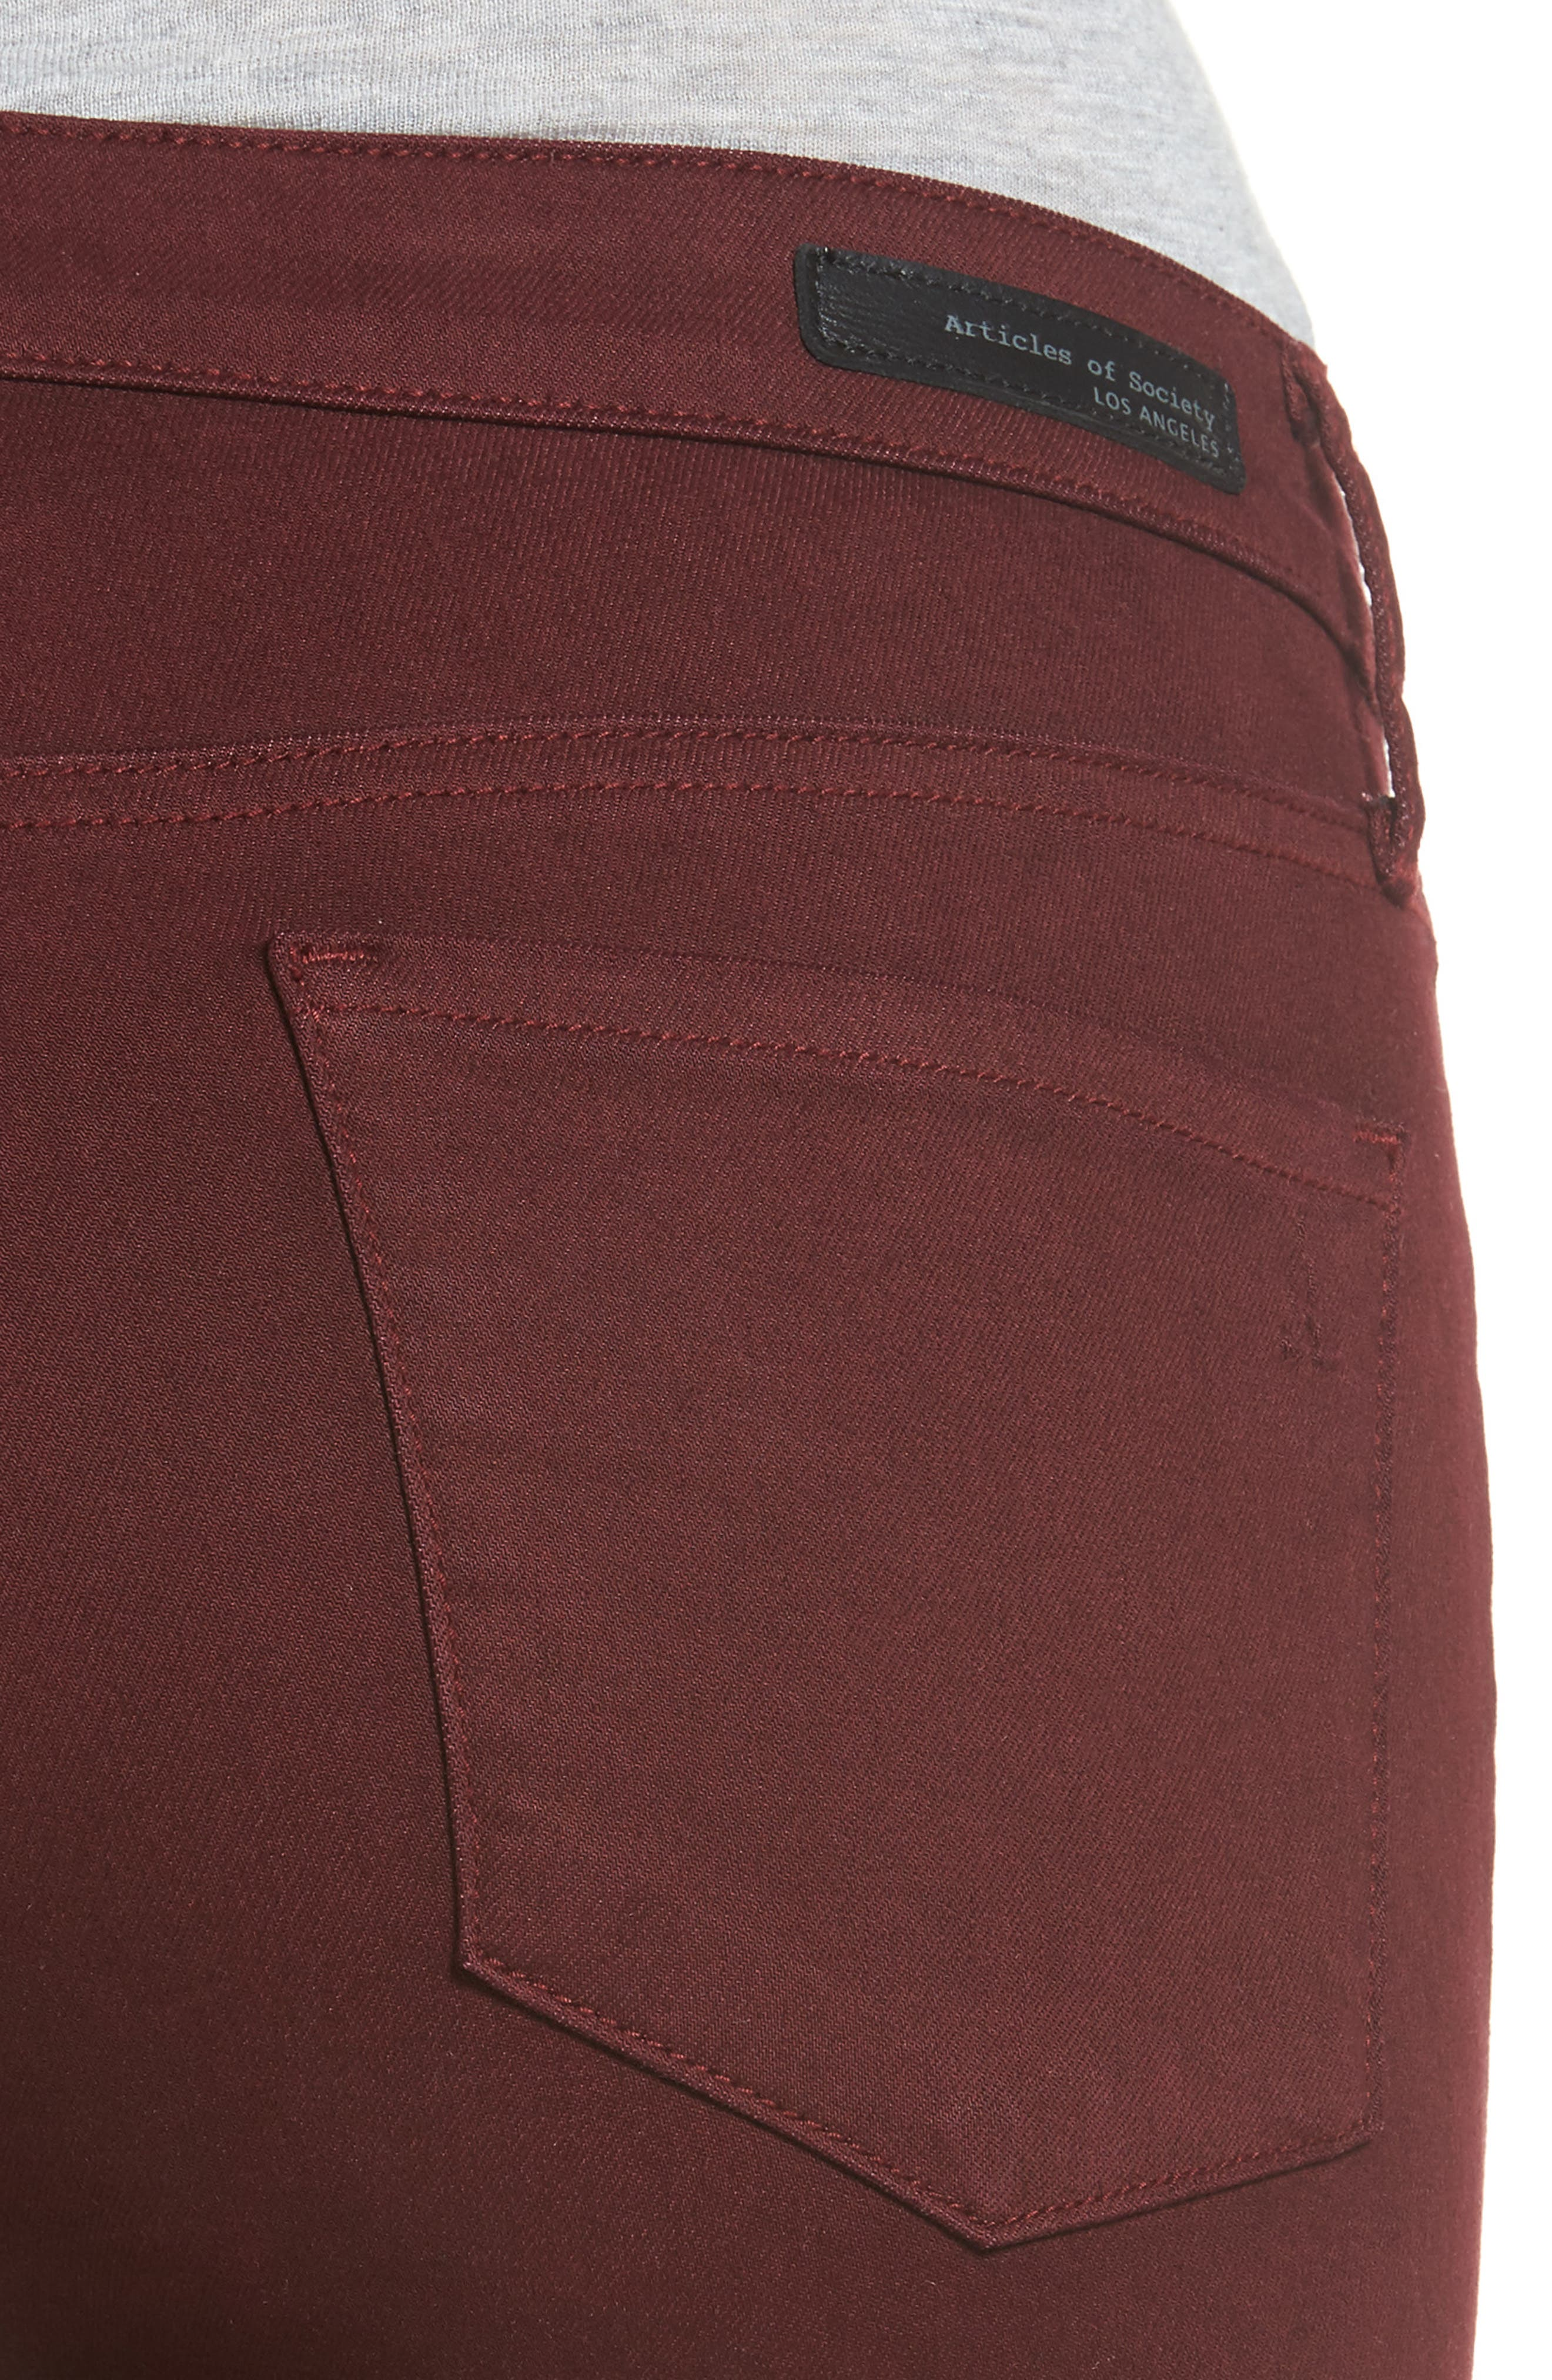 Alternate Image 4  - Articles of Society Sarah Skinny Jeans (Red Eye)